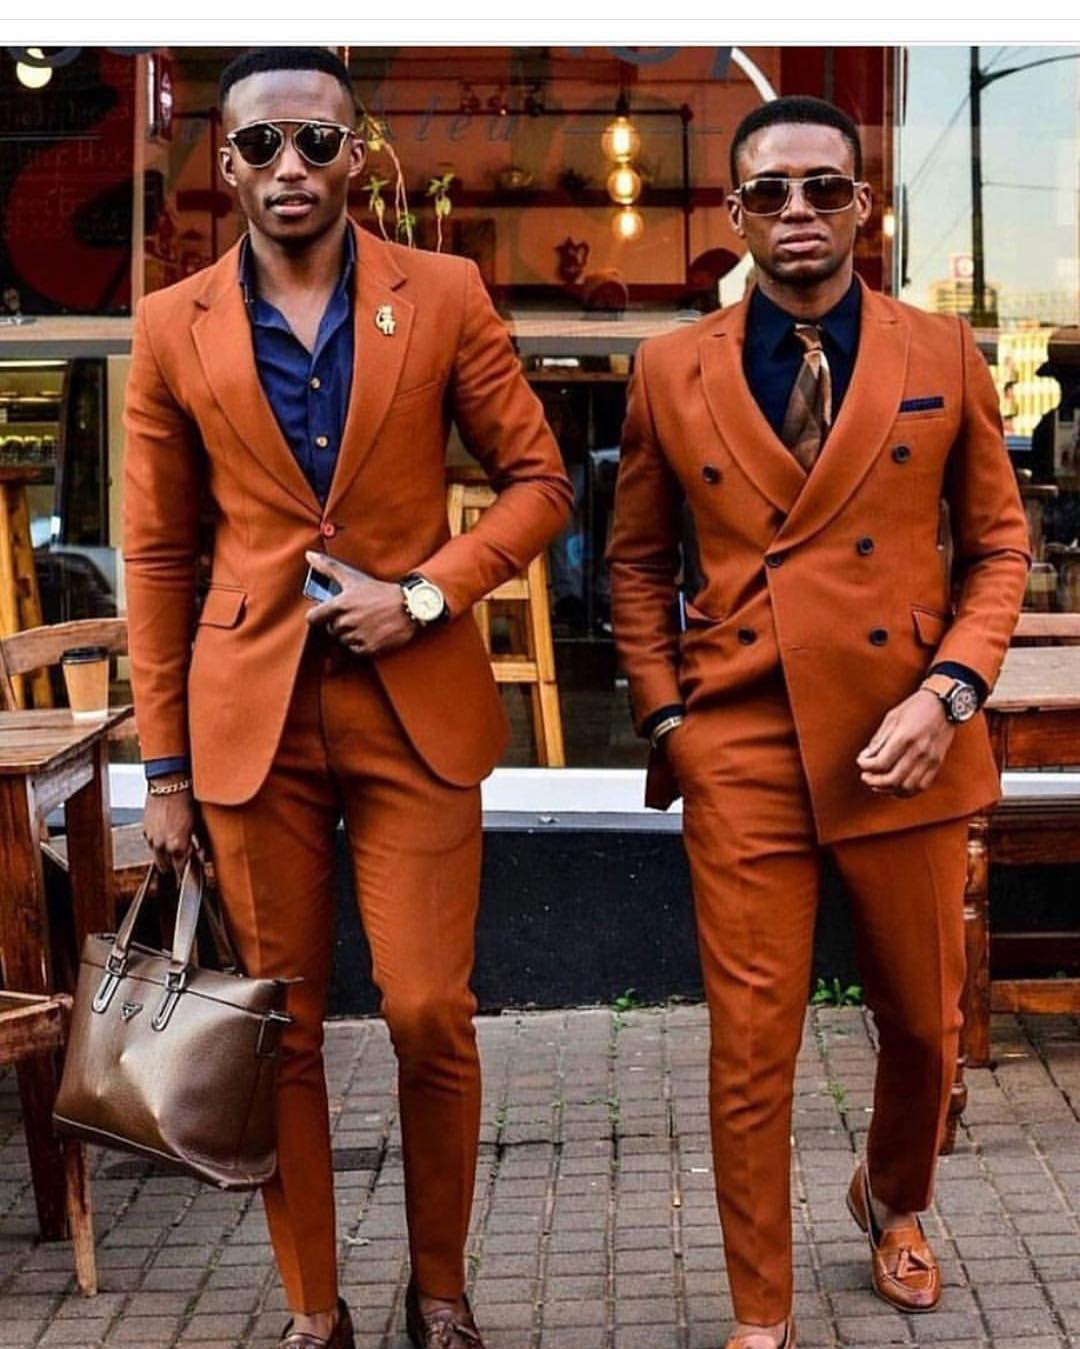 Male Fashion: How To Rock Colorful Suits